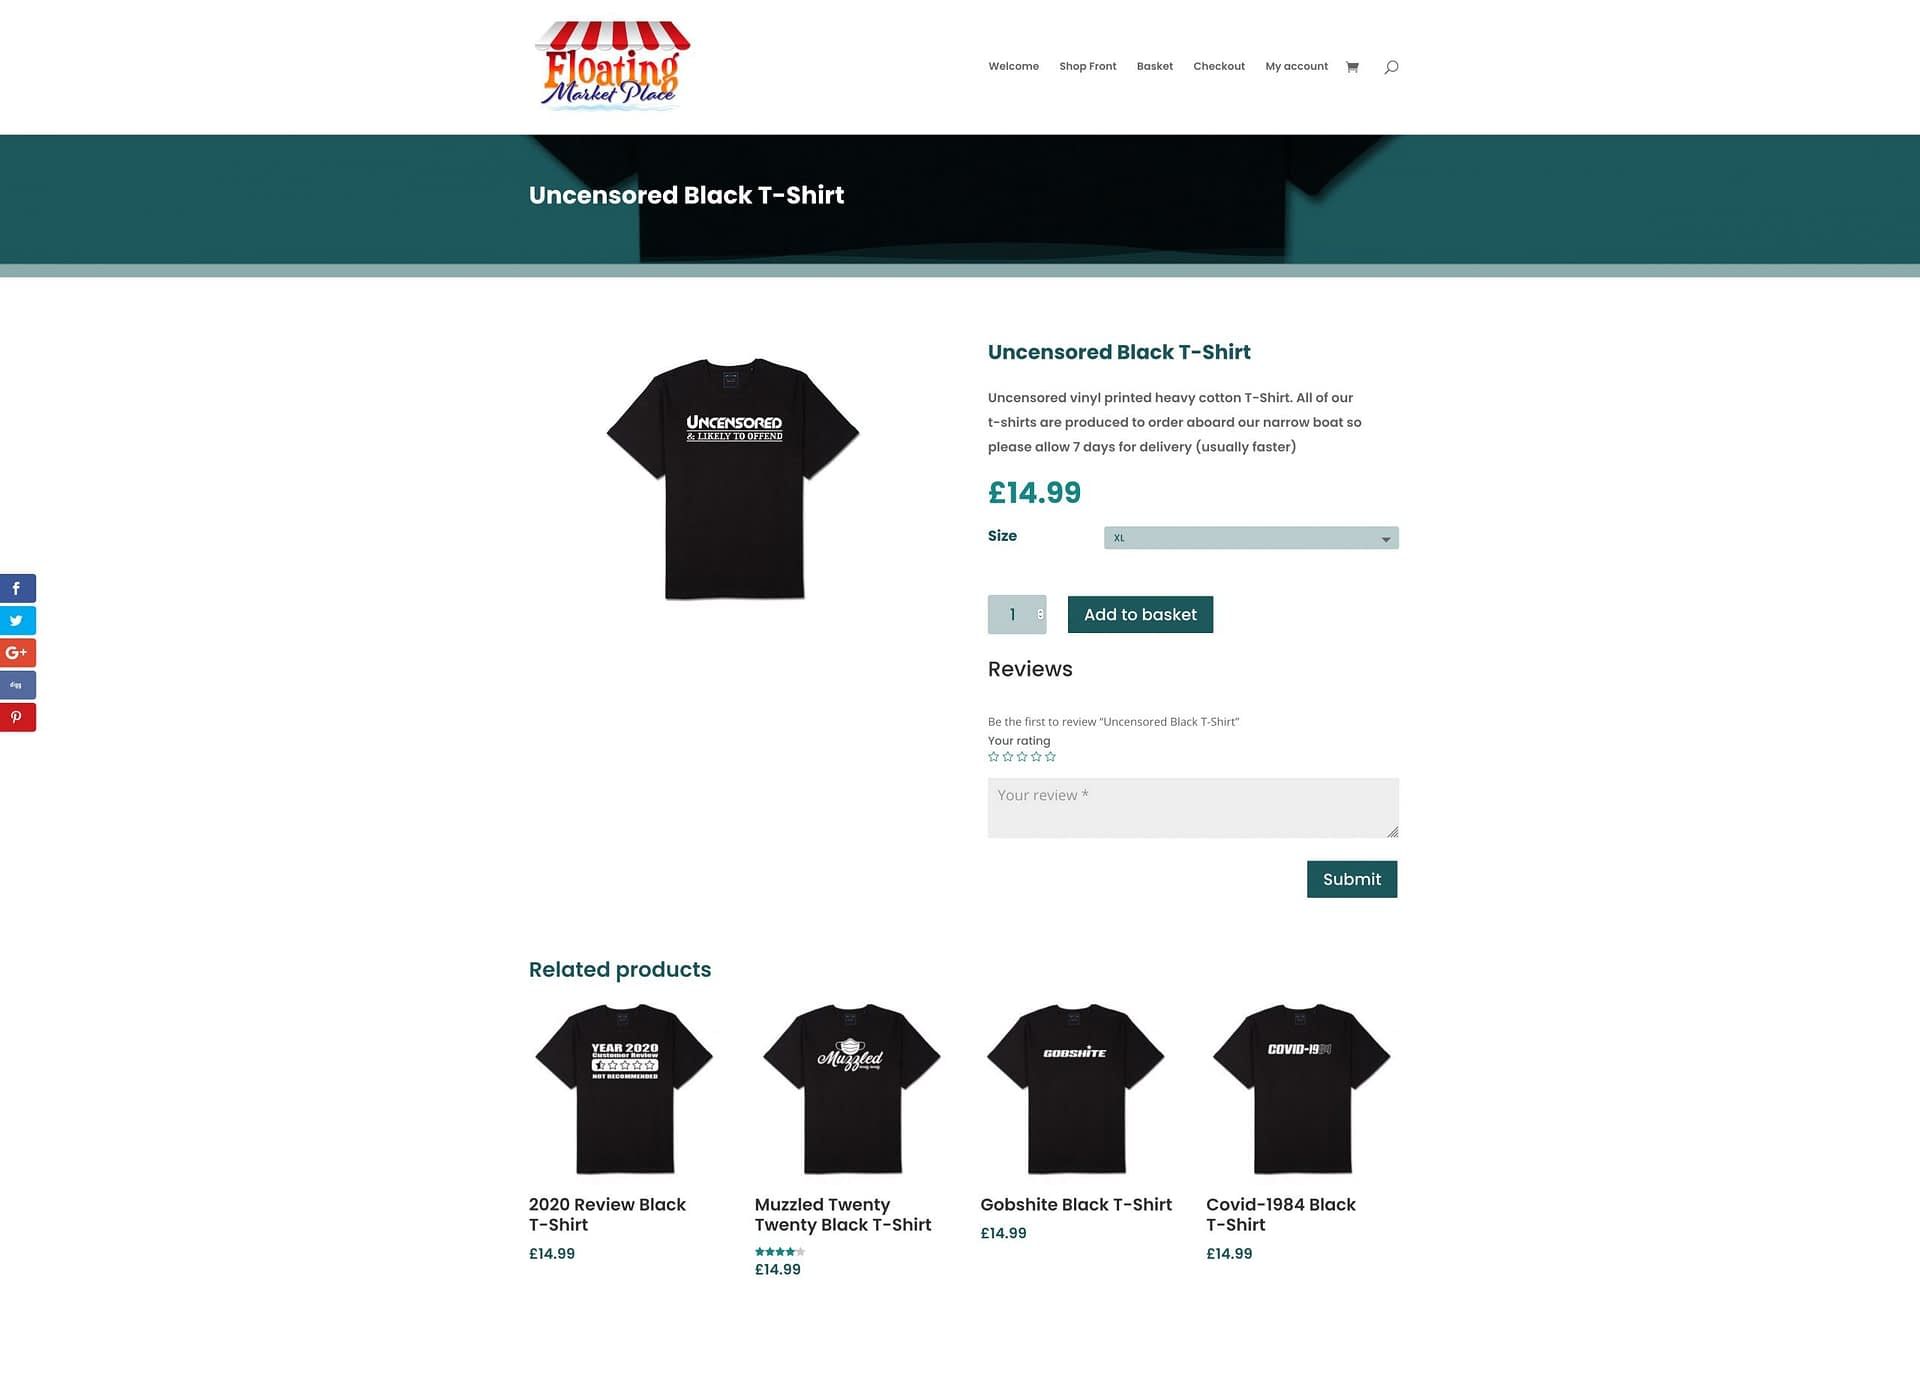 Buy Product Page